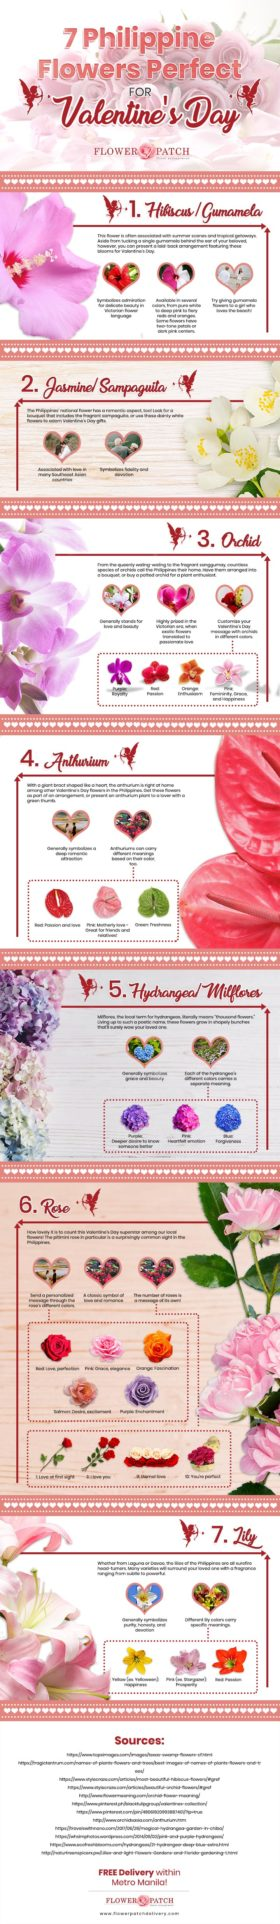 Romance in the Philippines: 7 Local Flowers Perfect for Valentine's Day